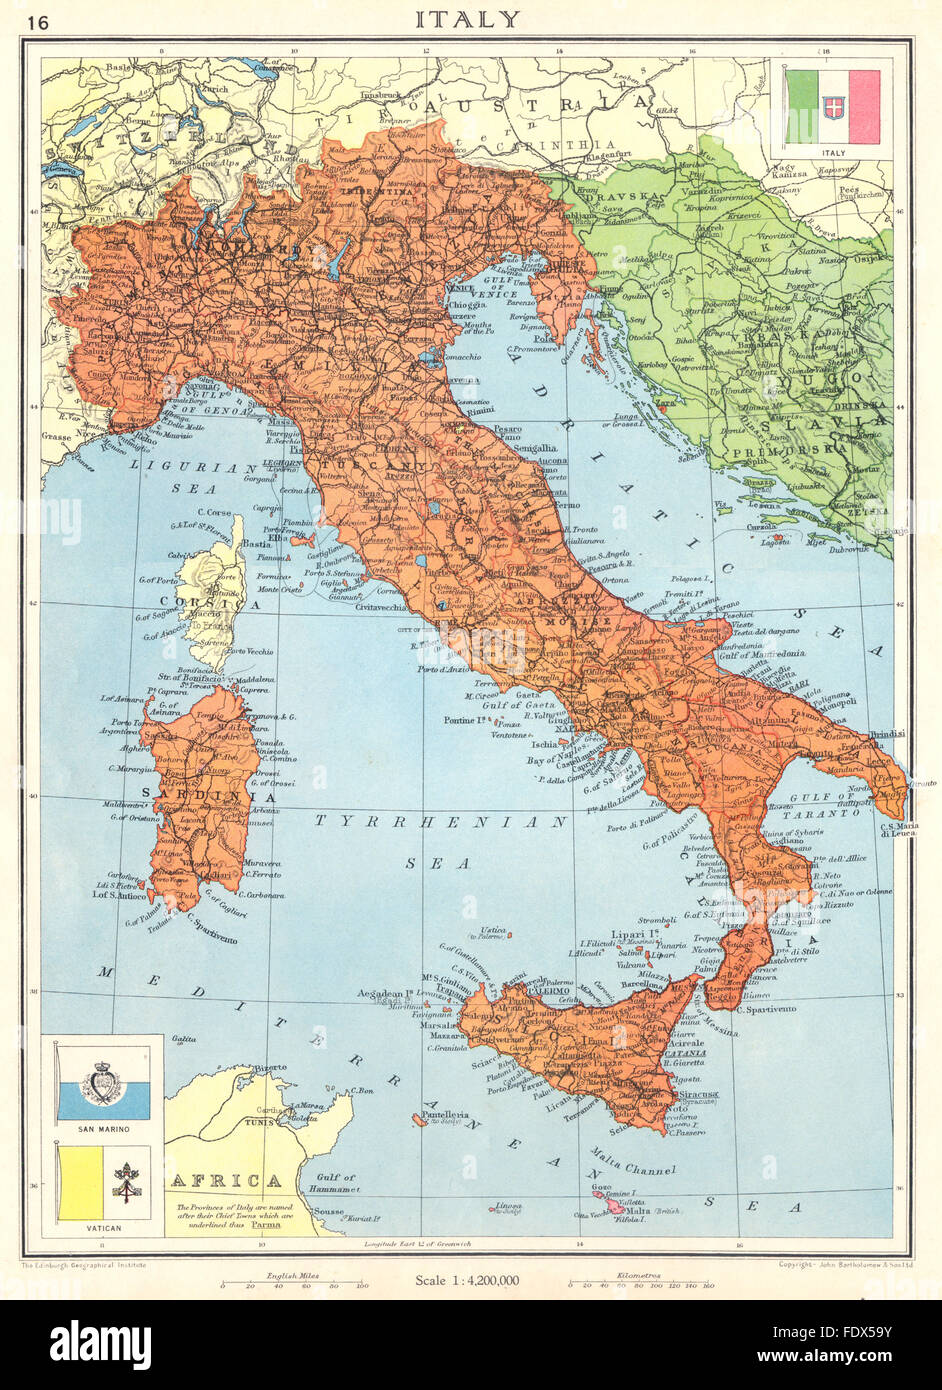 Italy shortly before world war 2 includes istria zarazadar italy shortly before world war 2 includes istria zarazadar lagosta 1938 map gumiabroncs Gallery